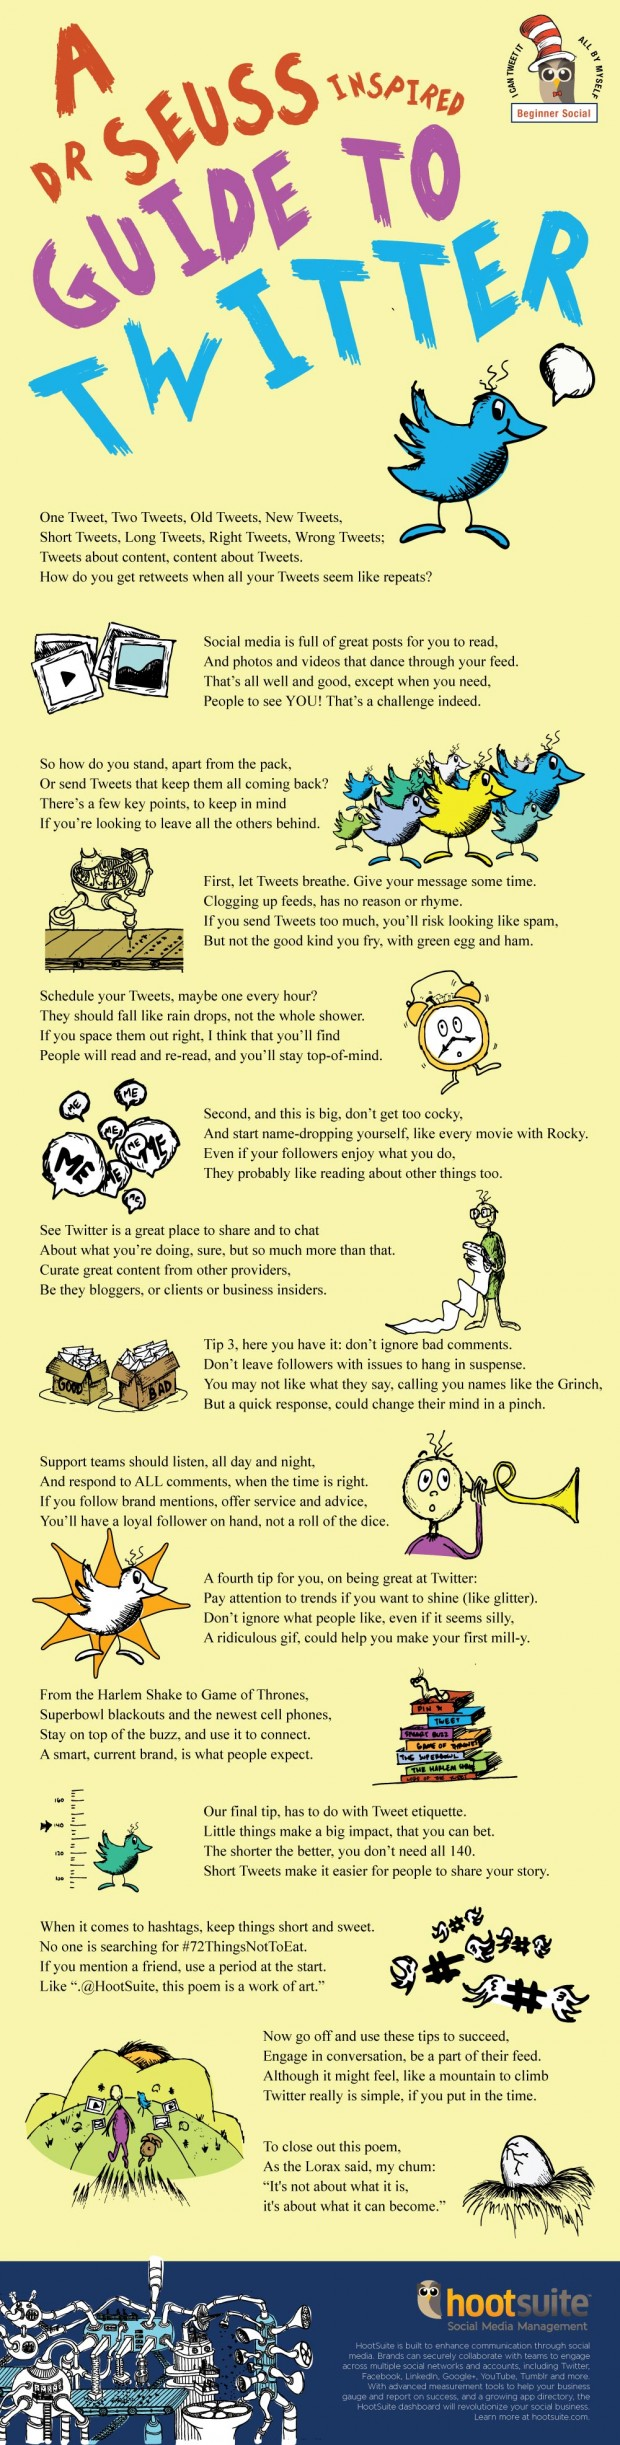 Dr Seuss Guide to Twitter